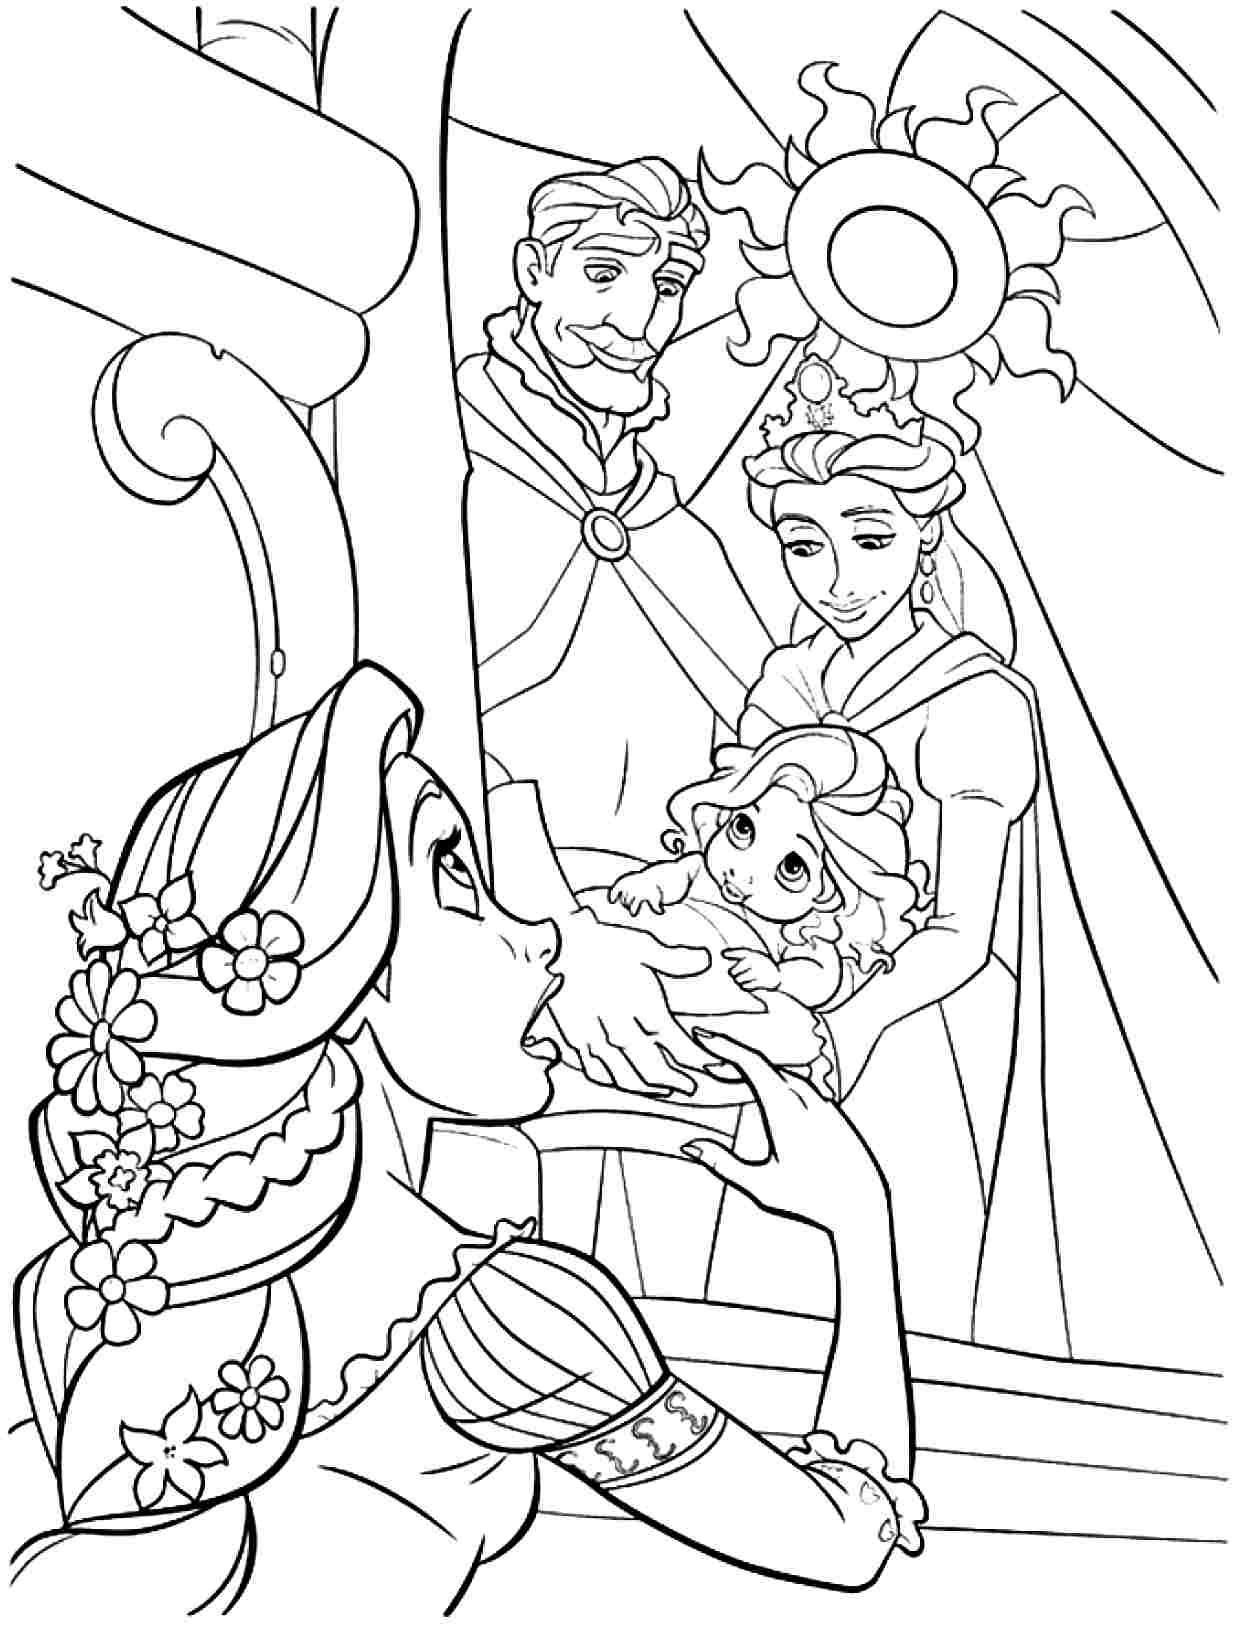 Tangled coloring page